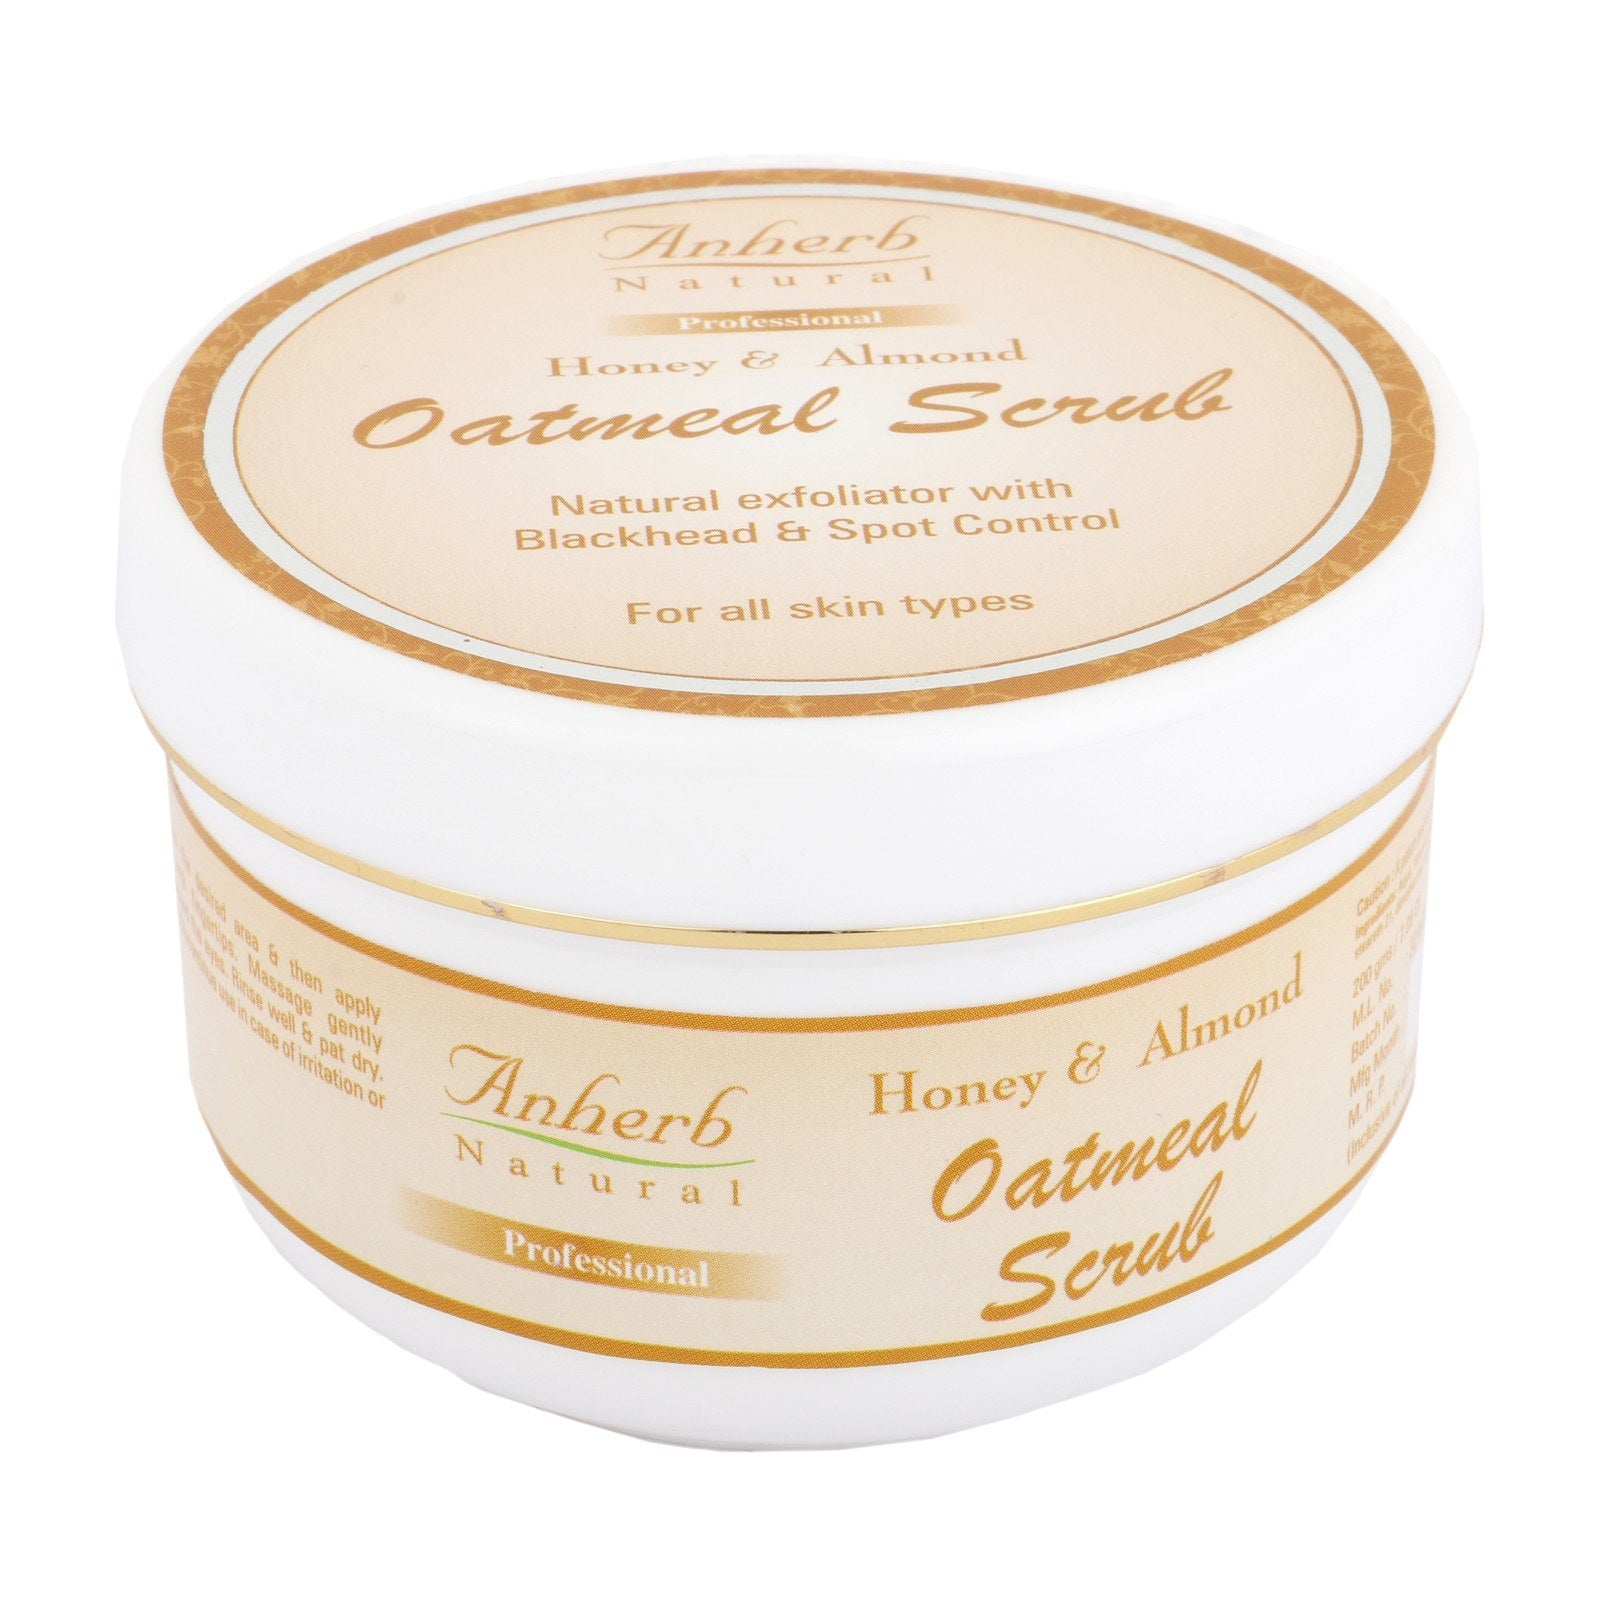 Face - Oatmeal Scrub-200gm